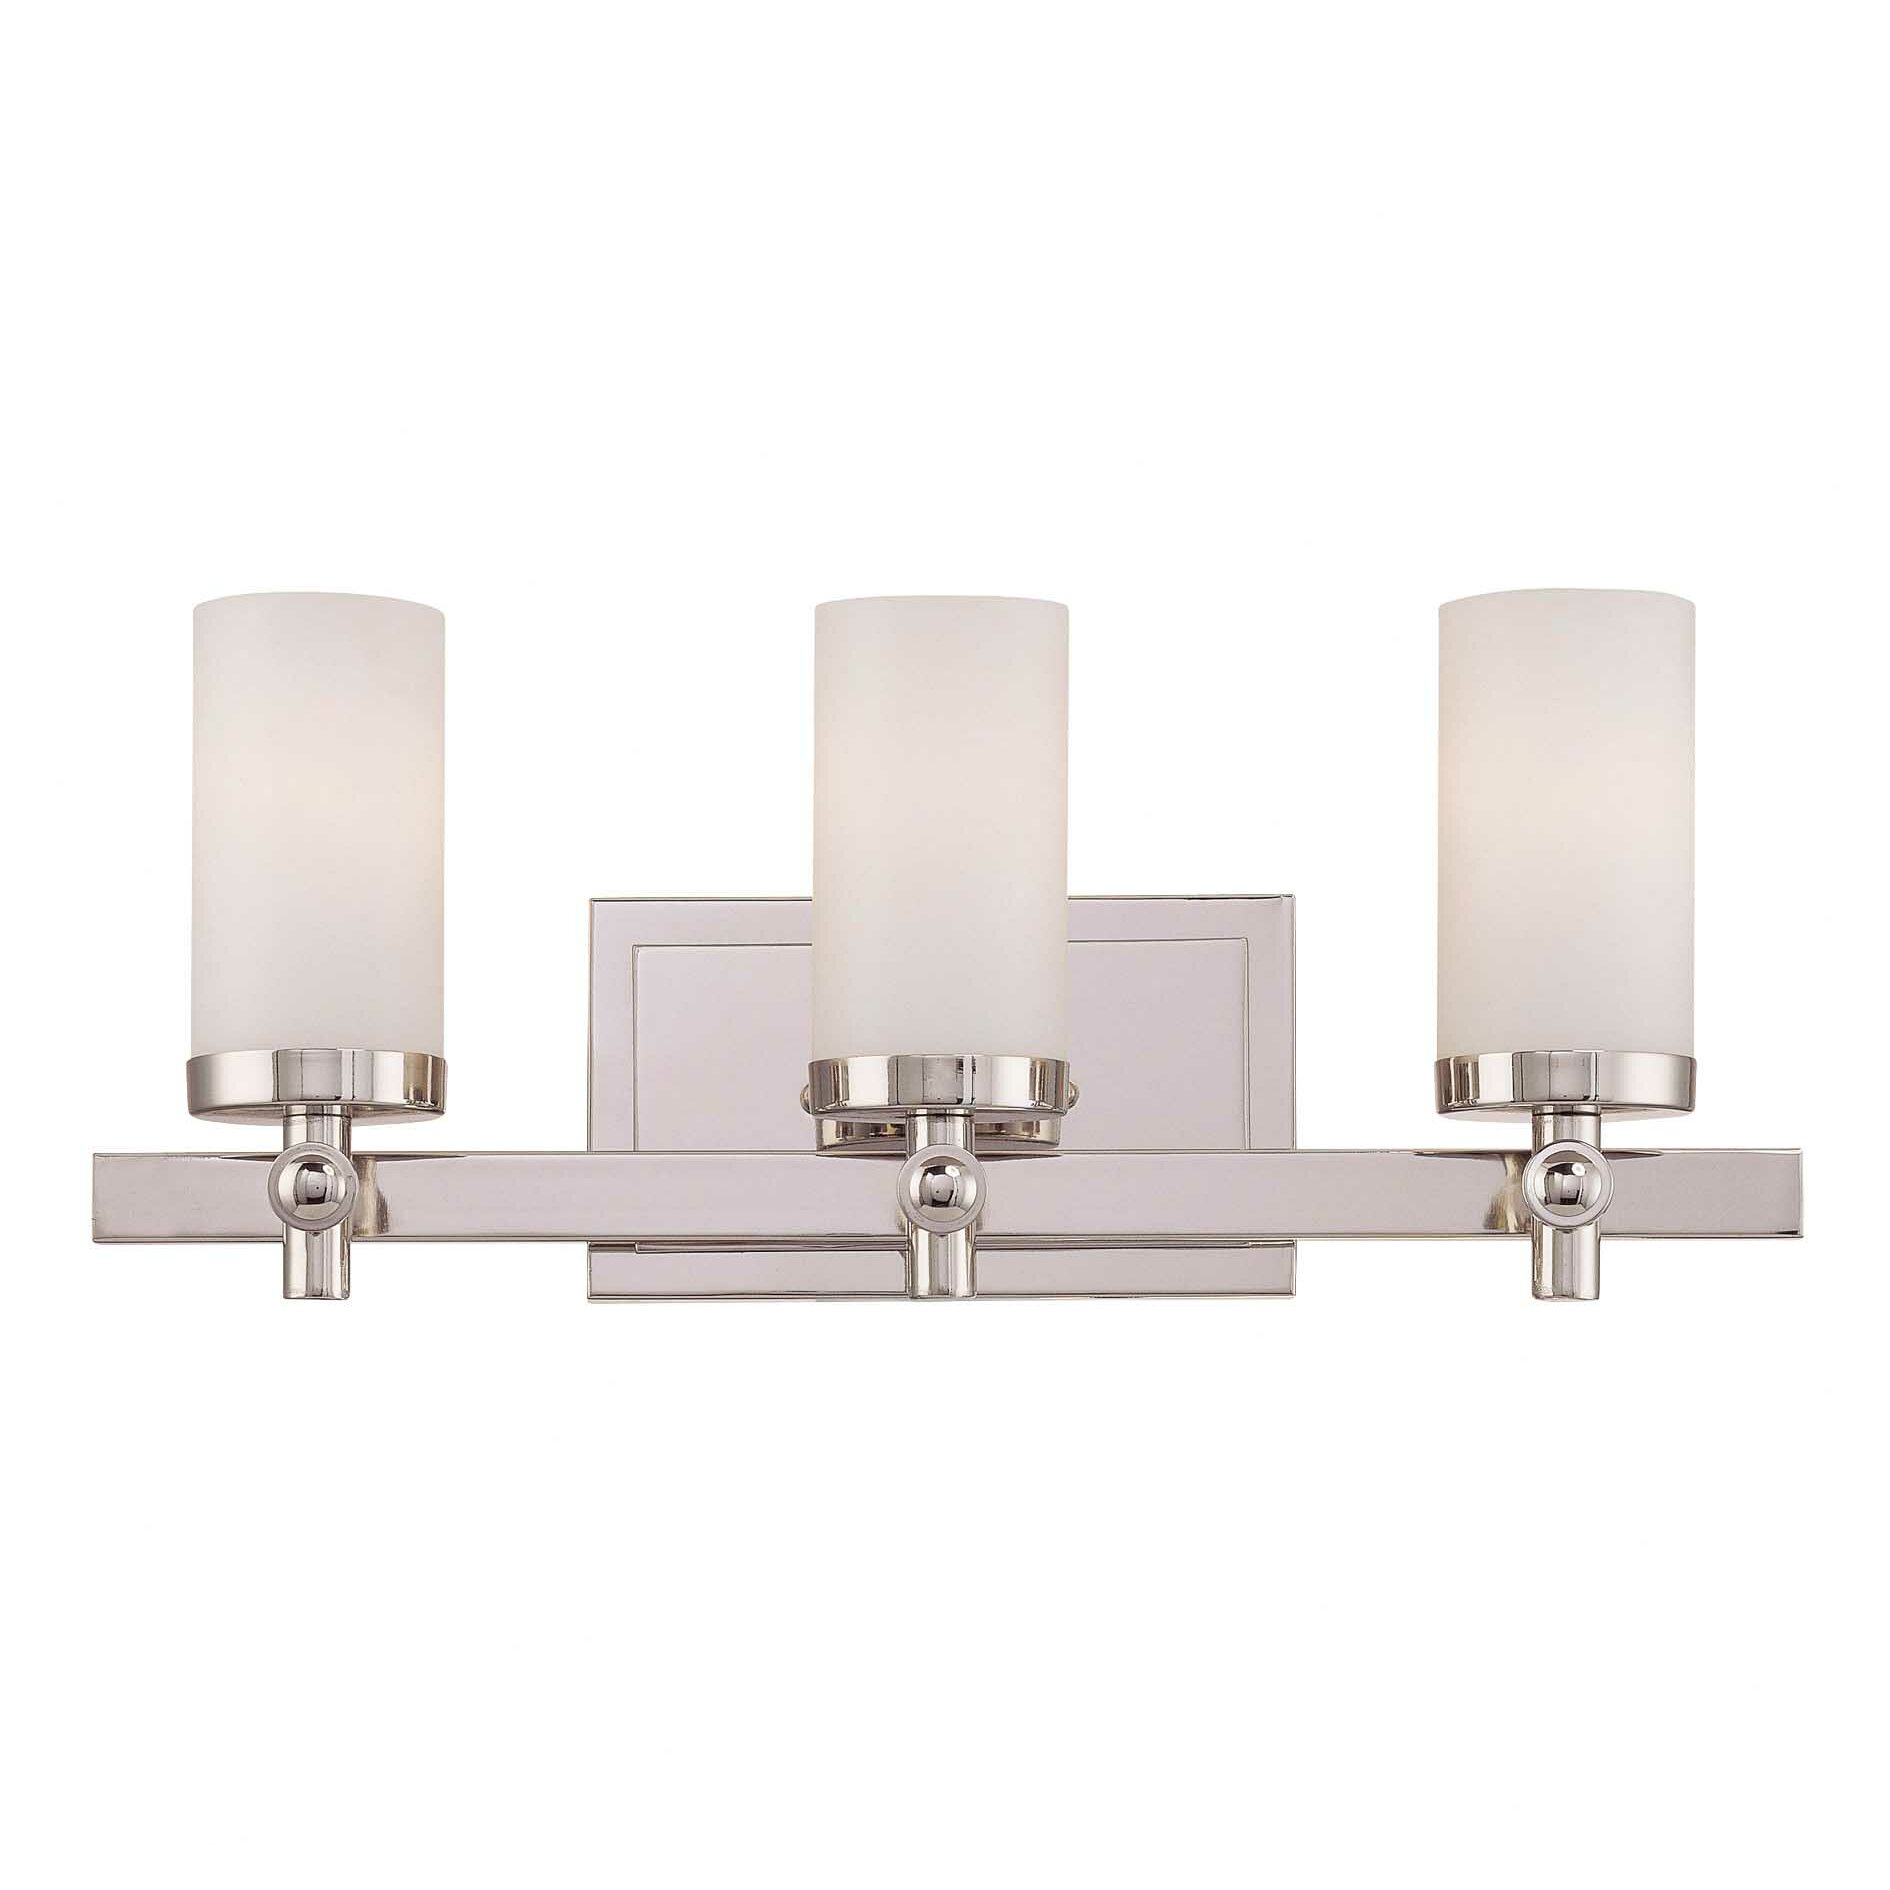 Savoy House Manhattan 3 Light Bath Vanity Light & Reviews Wayfair